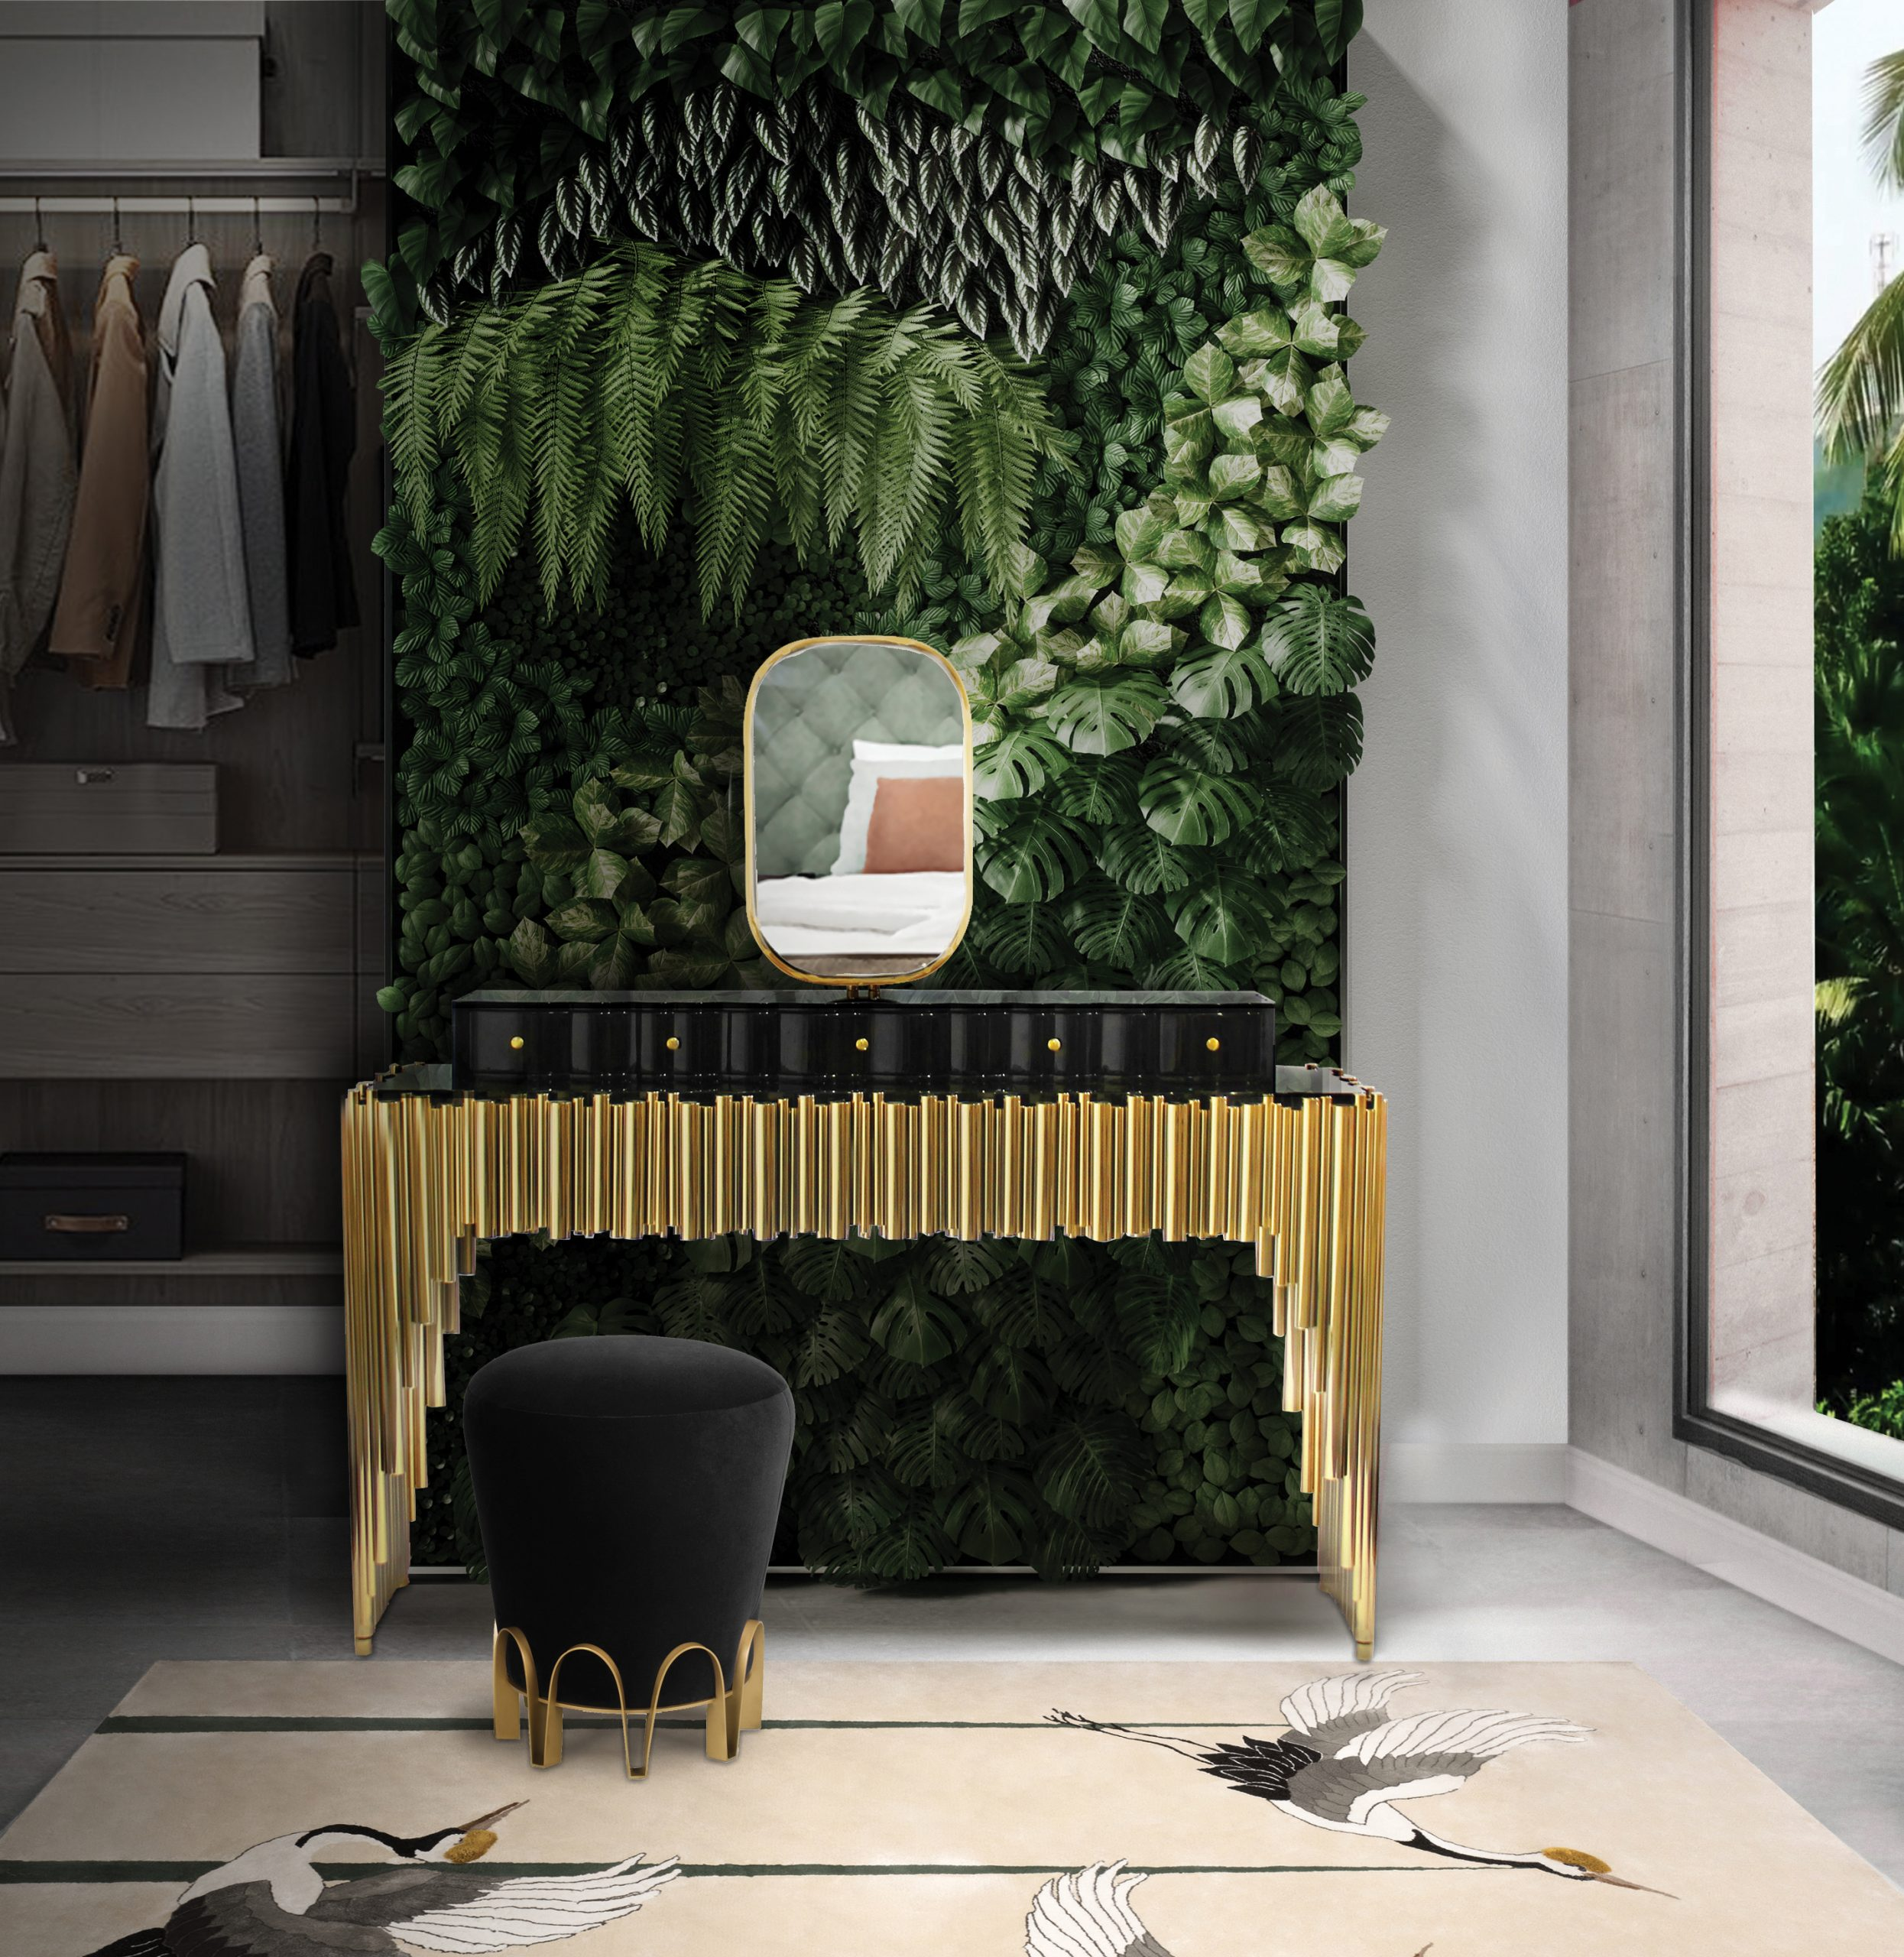 Top 5 interior design trends to welcome Spring in 2020 interior design trends Interior design trends to welcome Spring maison valentina biophilic ambience scaled